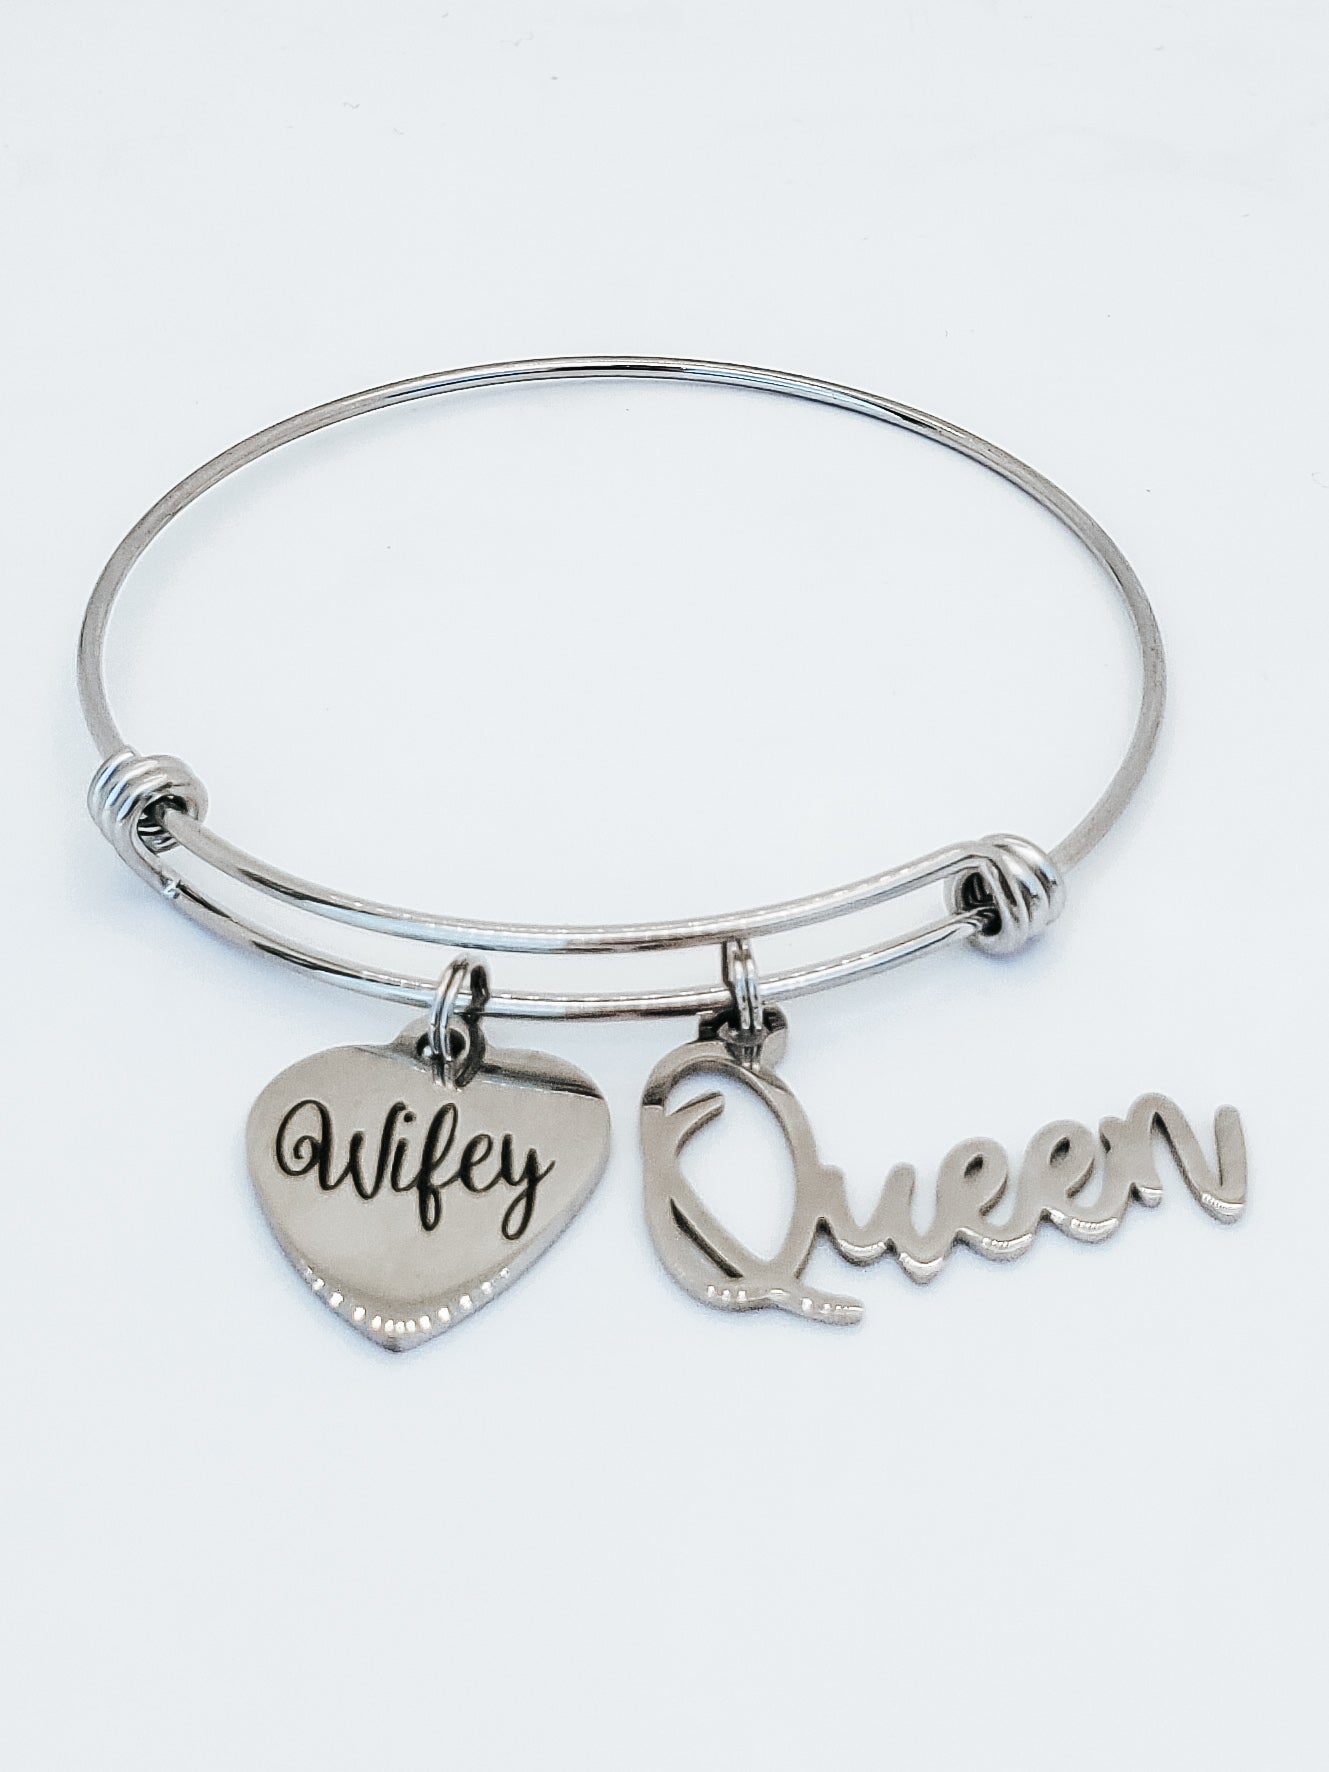 Wifey & Queen Charm Bangle